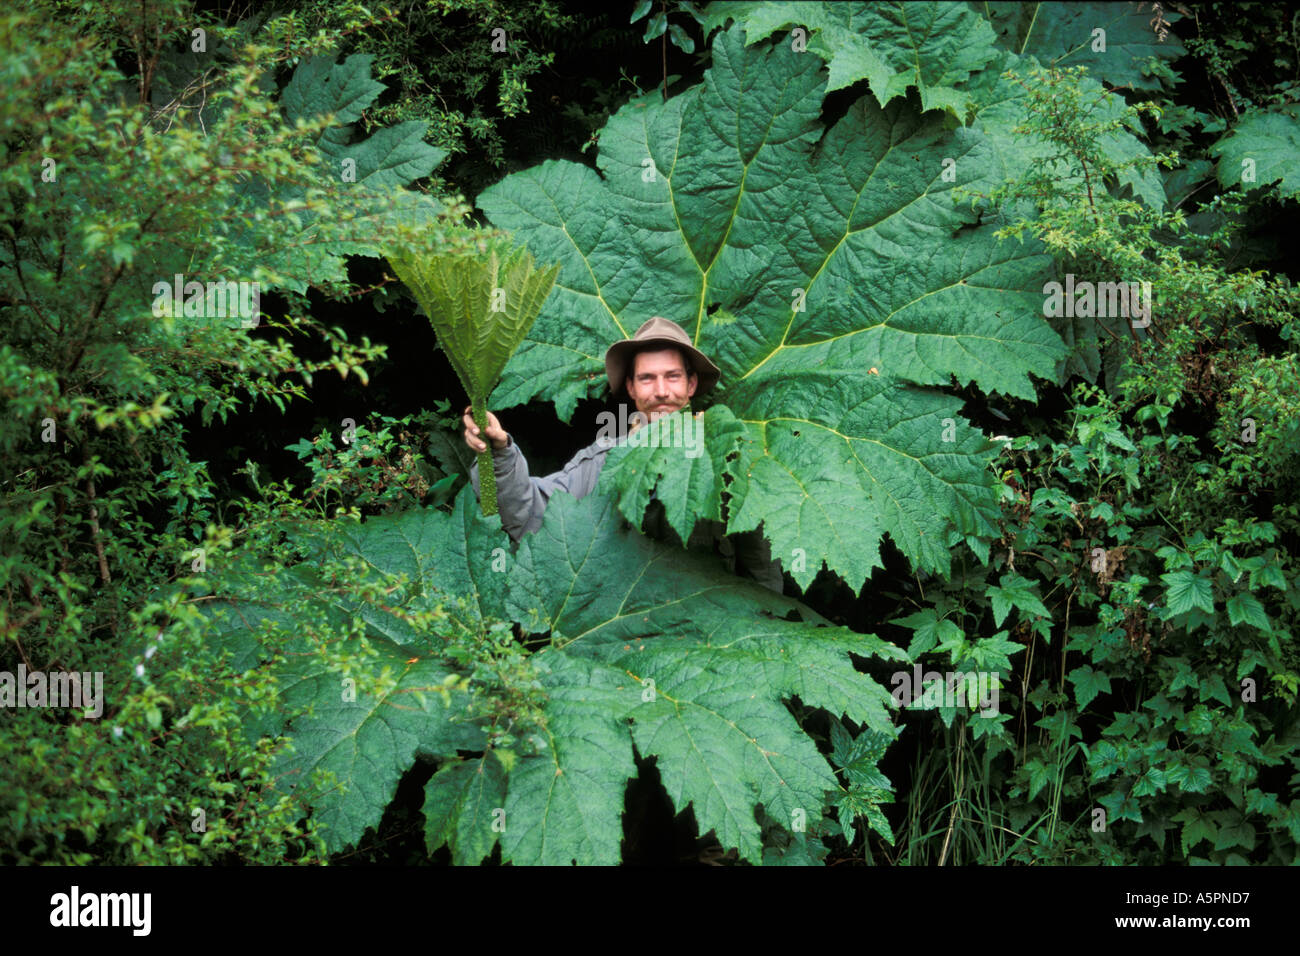 Man between giant plants in the cold rain forest Queulat National Park South Chile - Stock Image